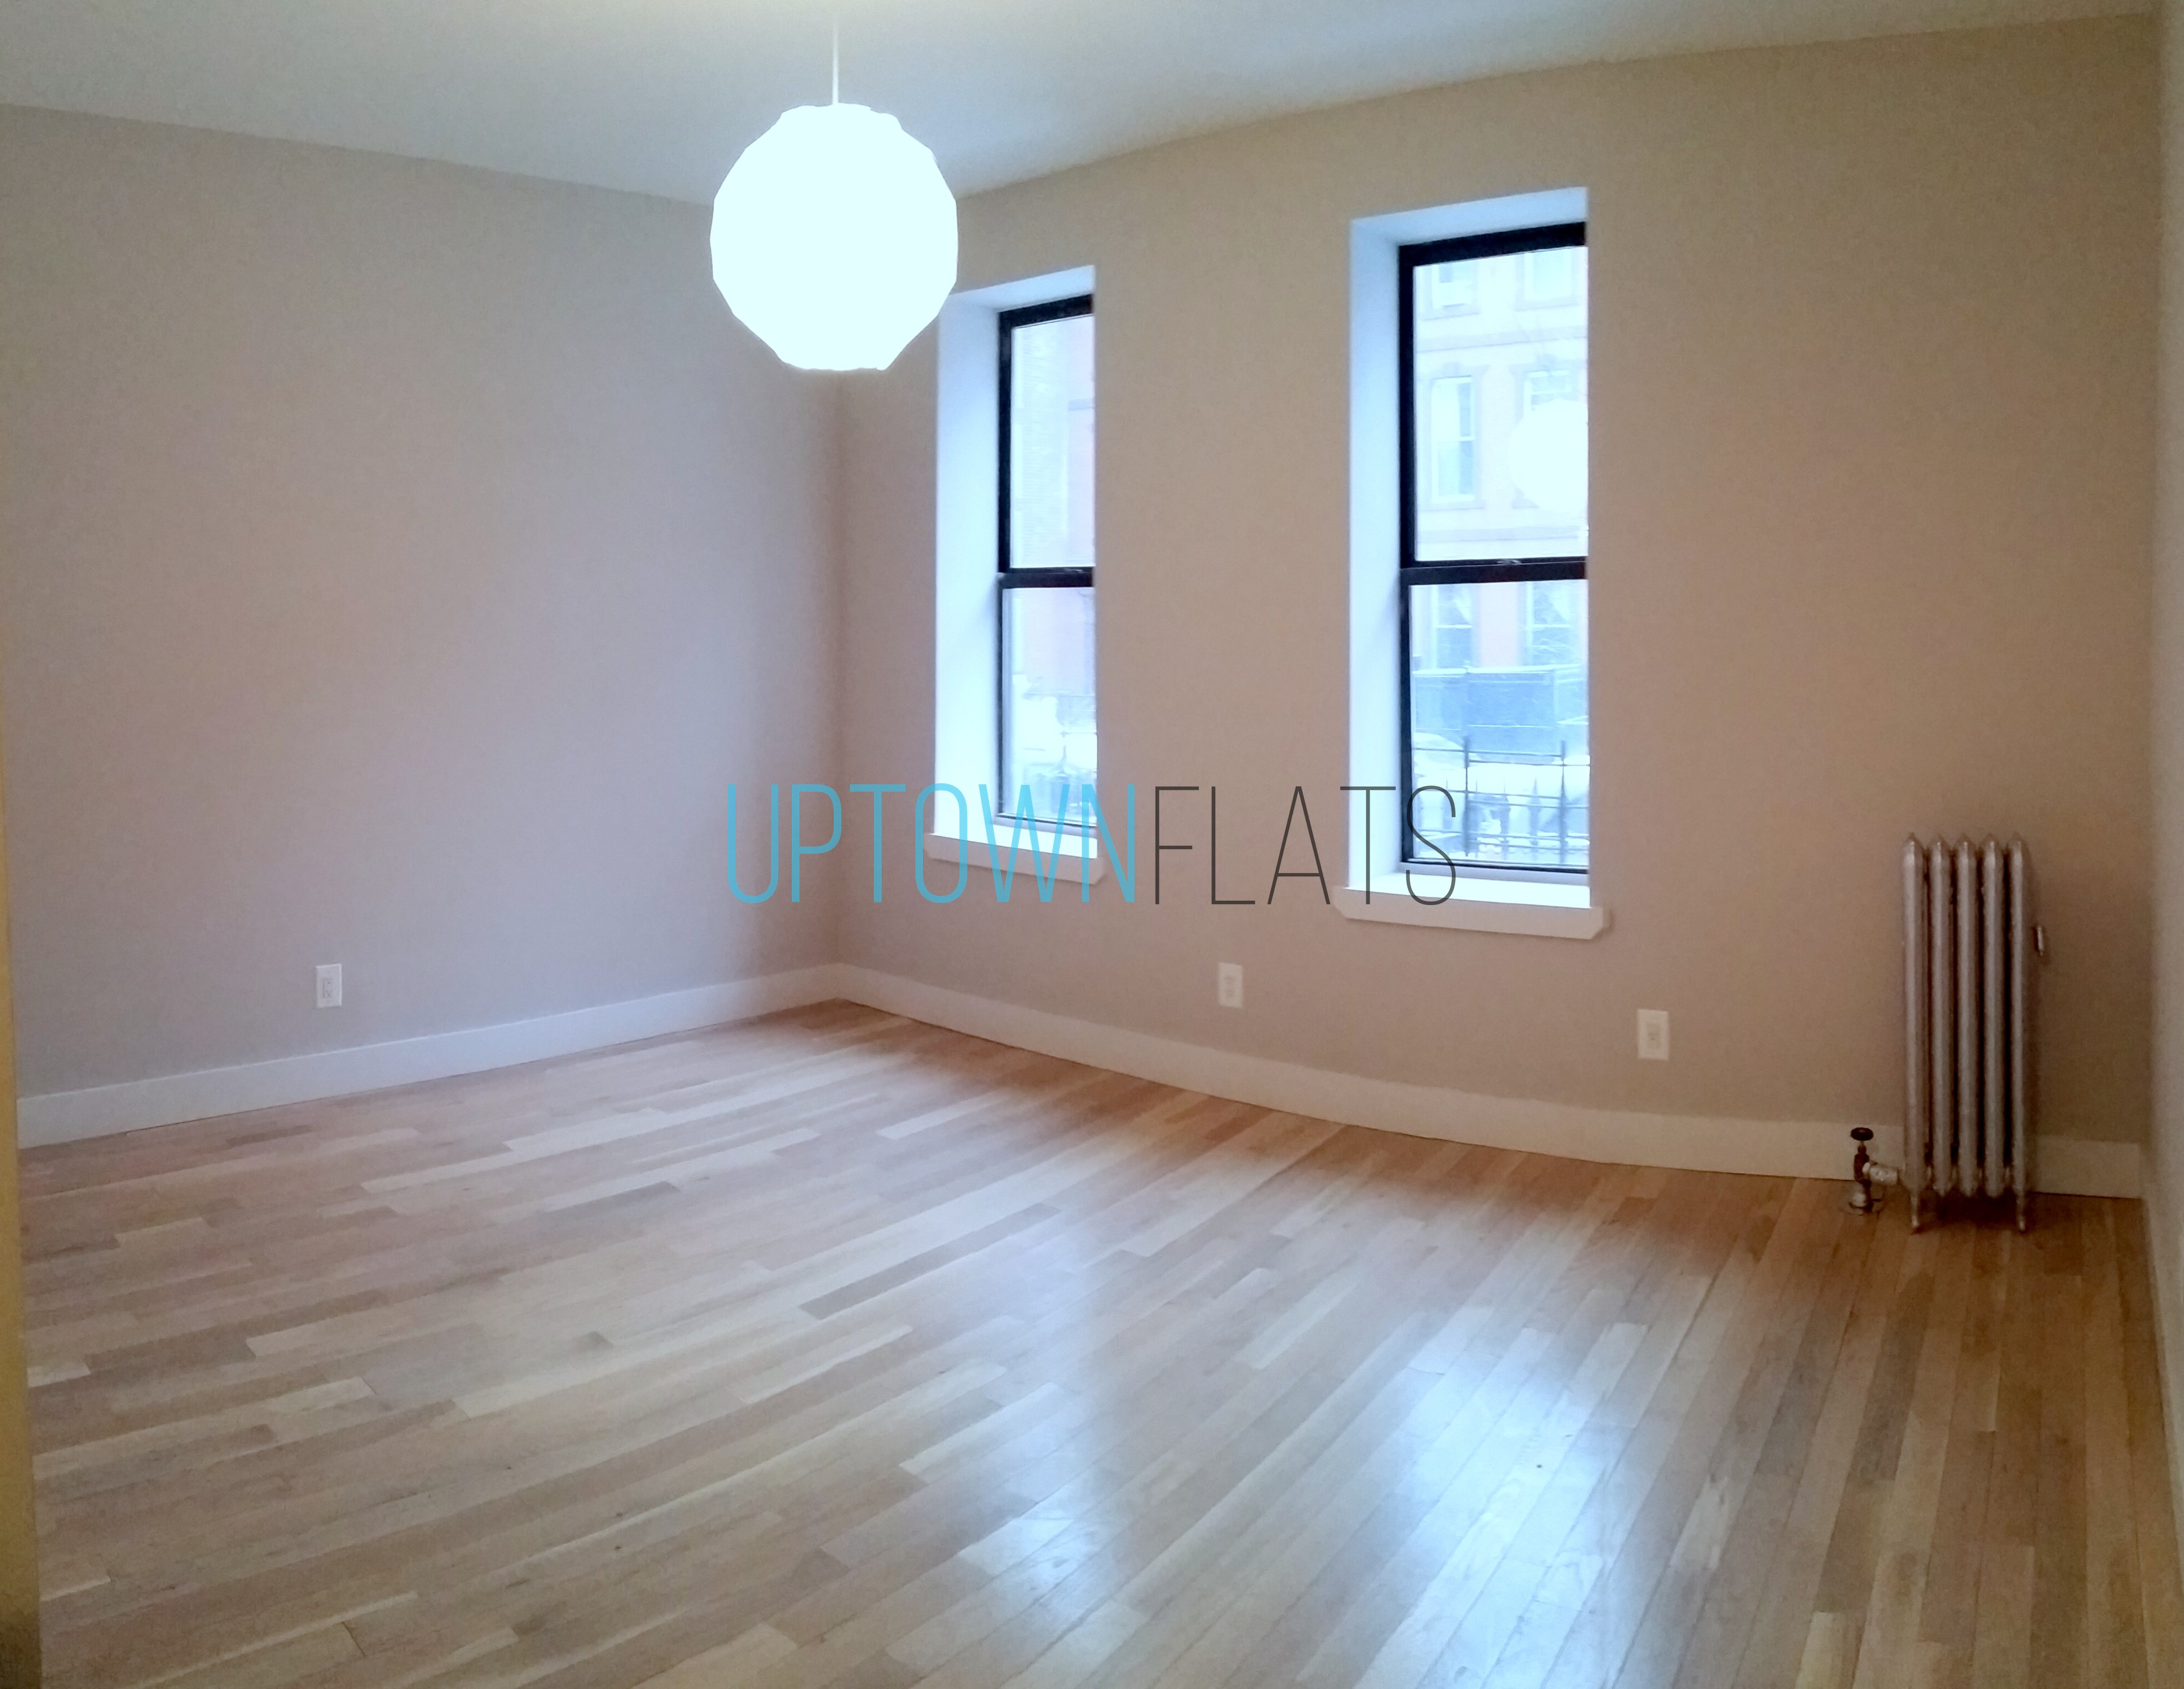 510 West 158th Street 3 New York Ny 10032 3 Bedroom Apartment For Rent For 2 775 Month Zumper